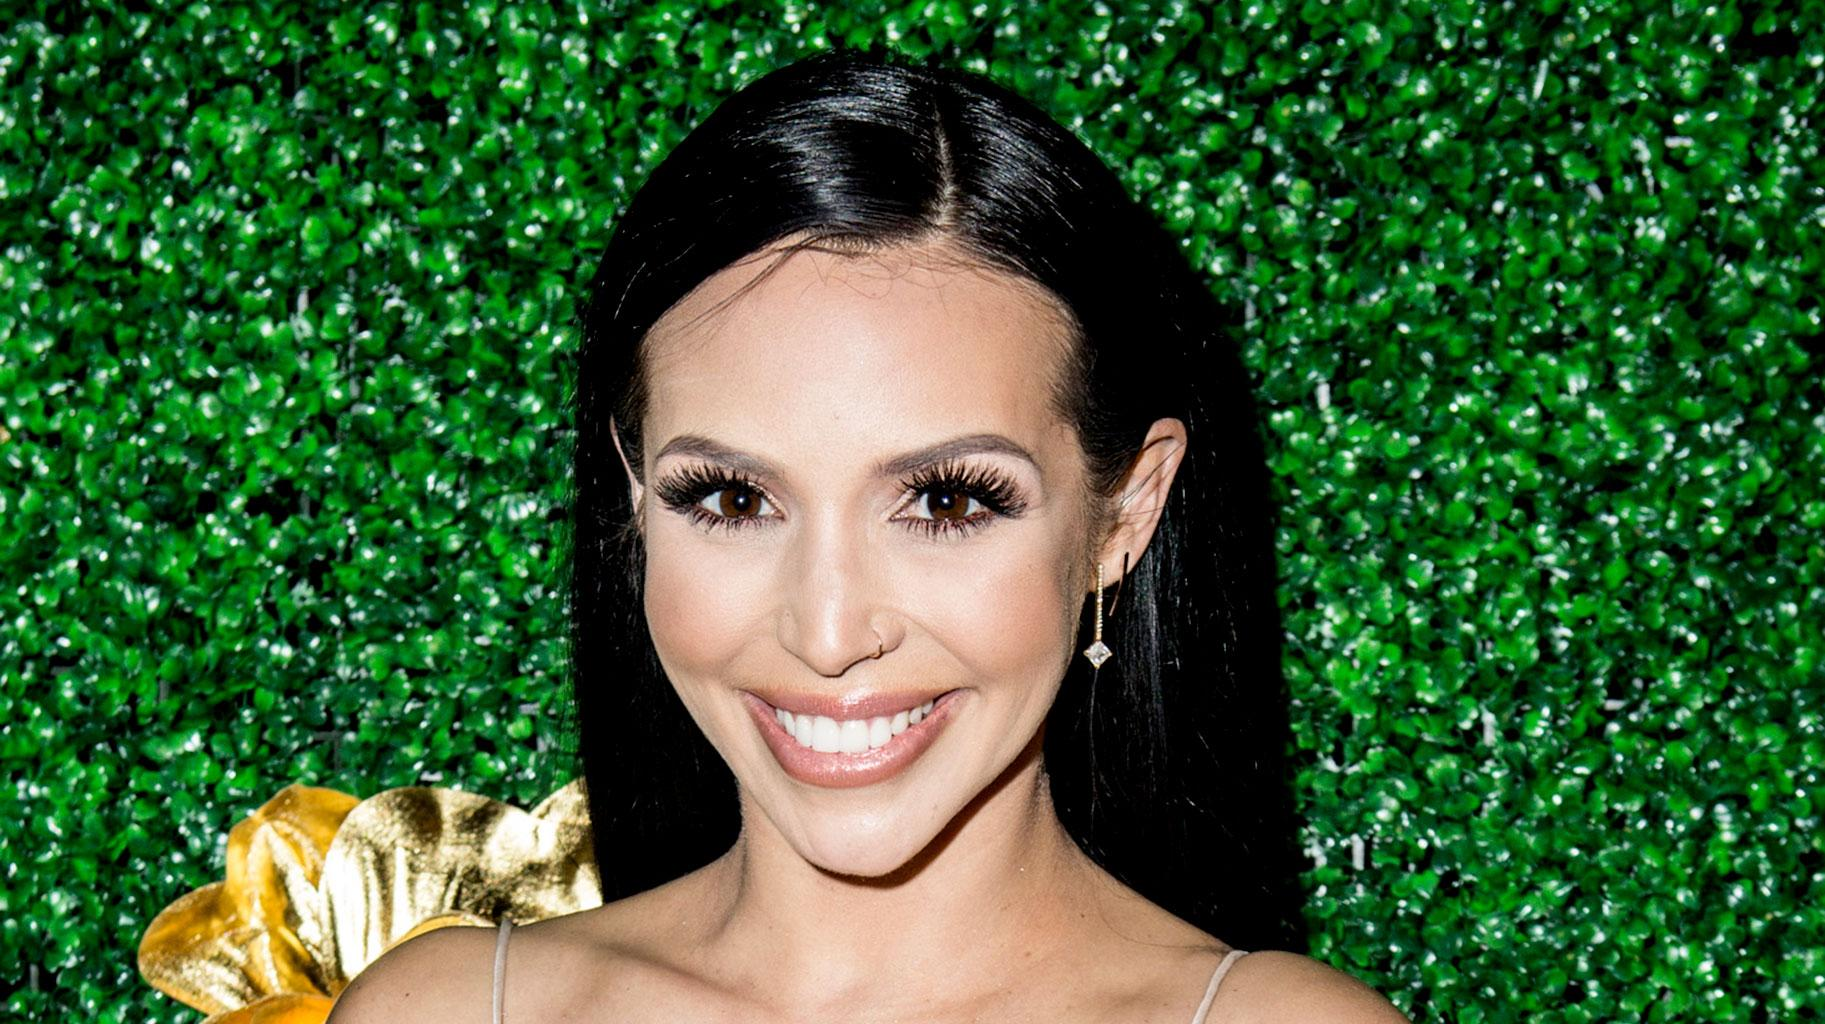 Scheana Marie Announces She's Pregnant Only 4 Months After Suffering Miscarriage!